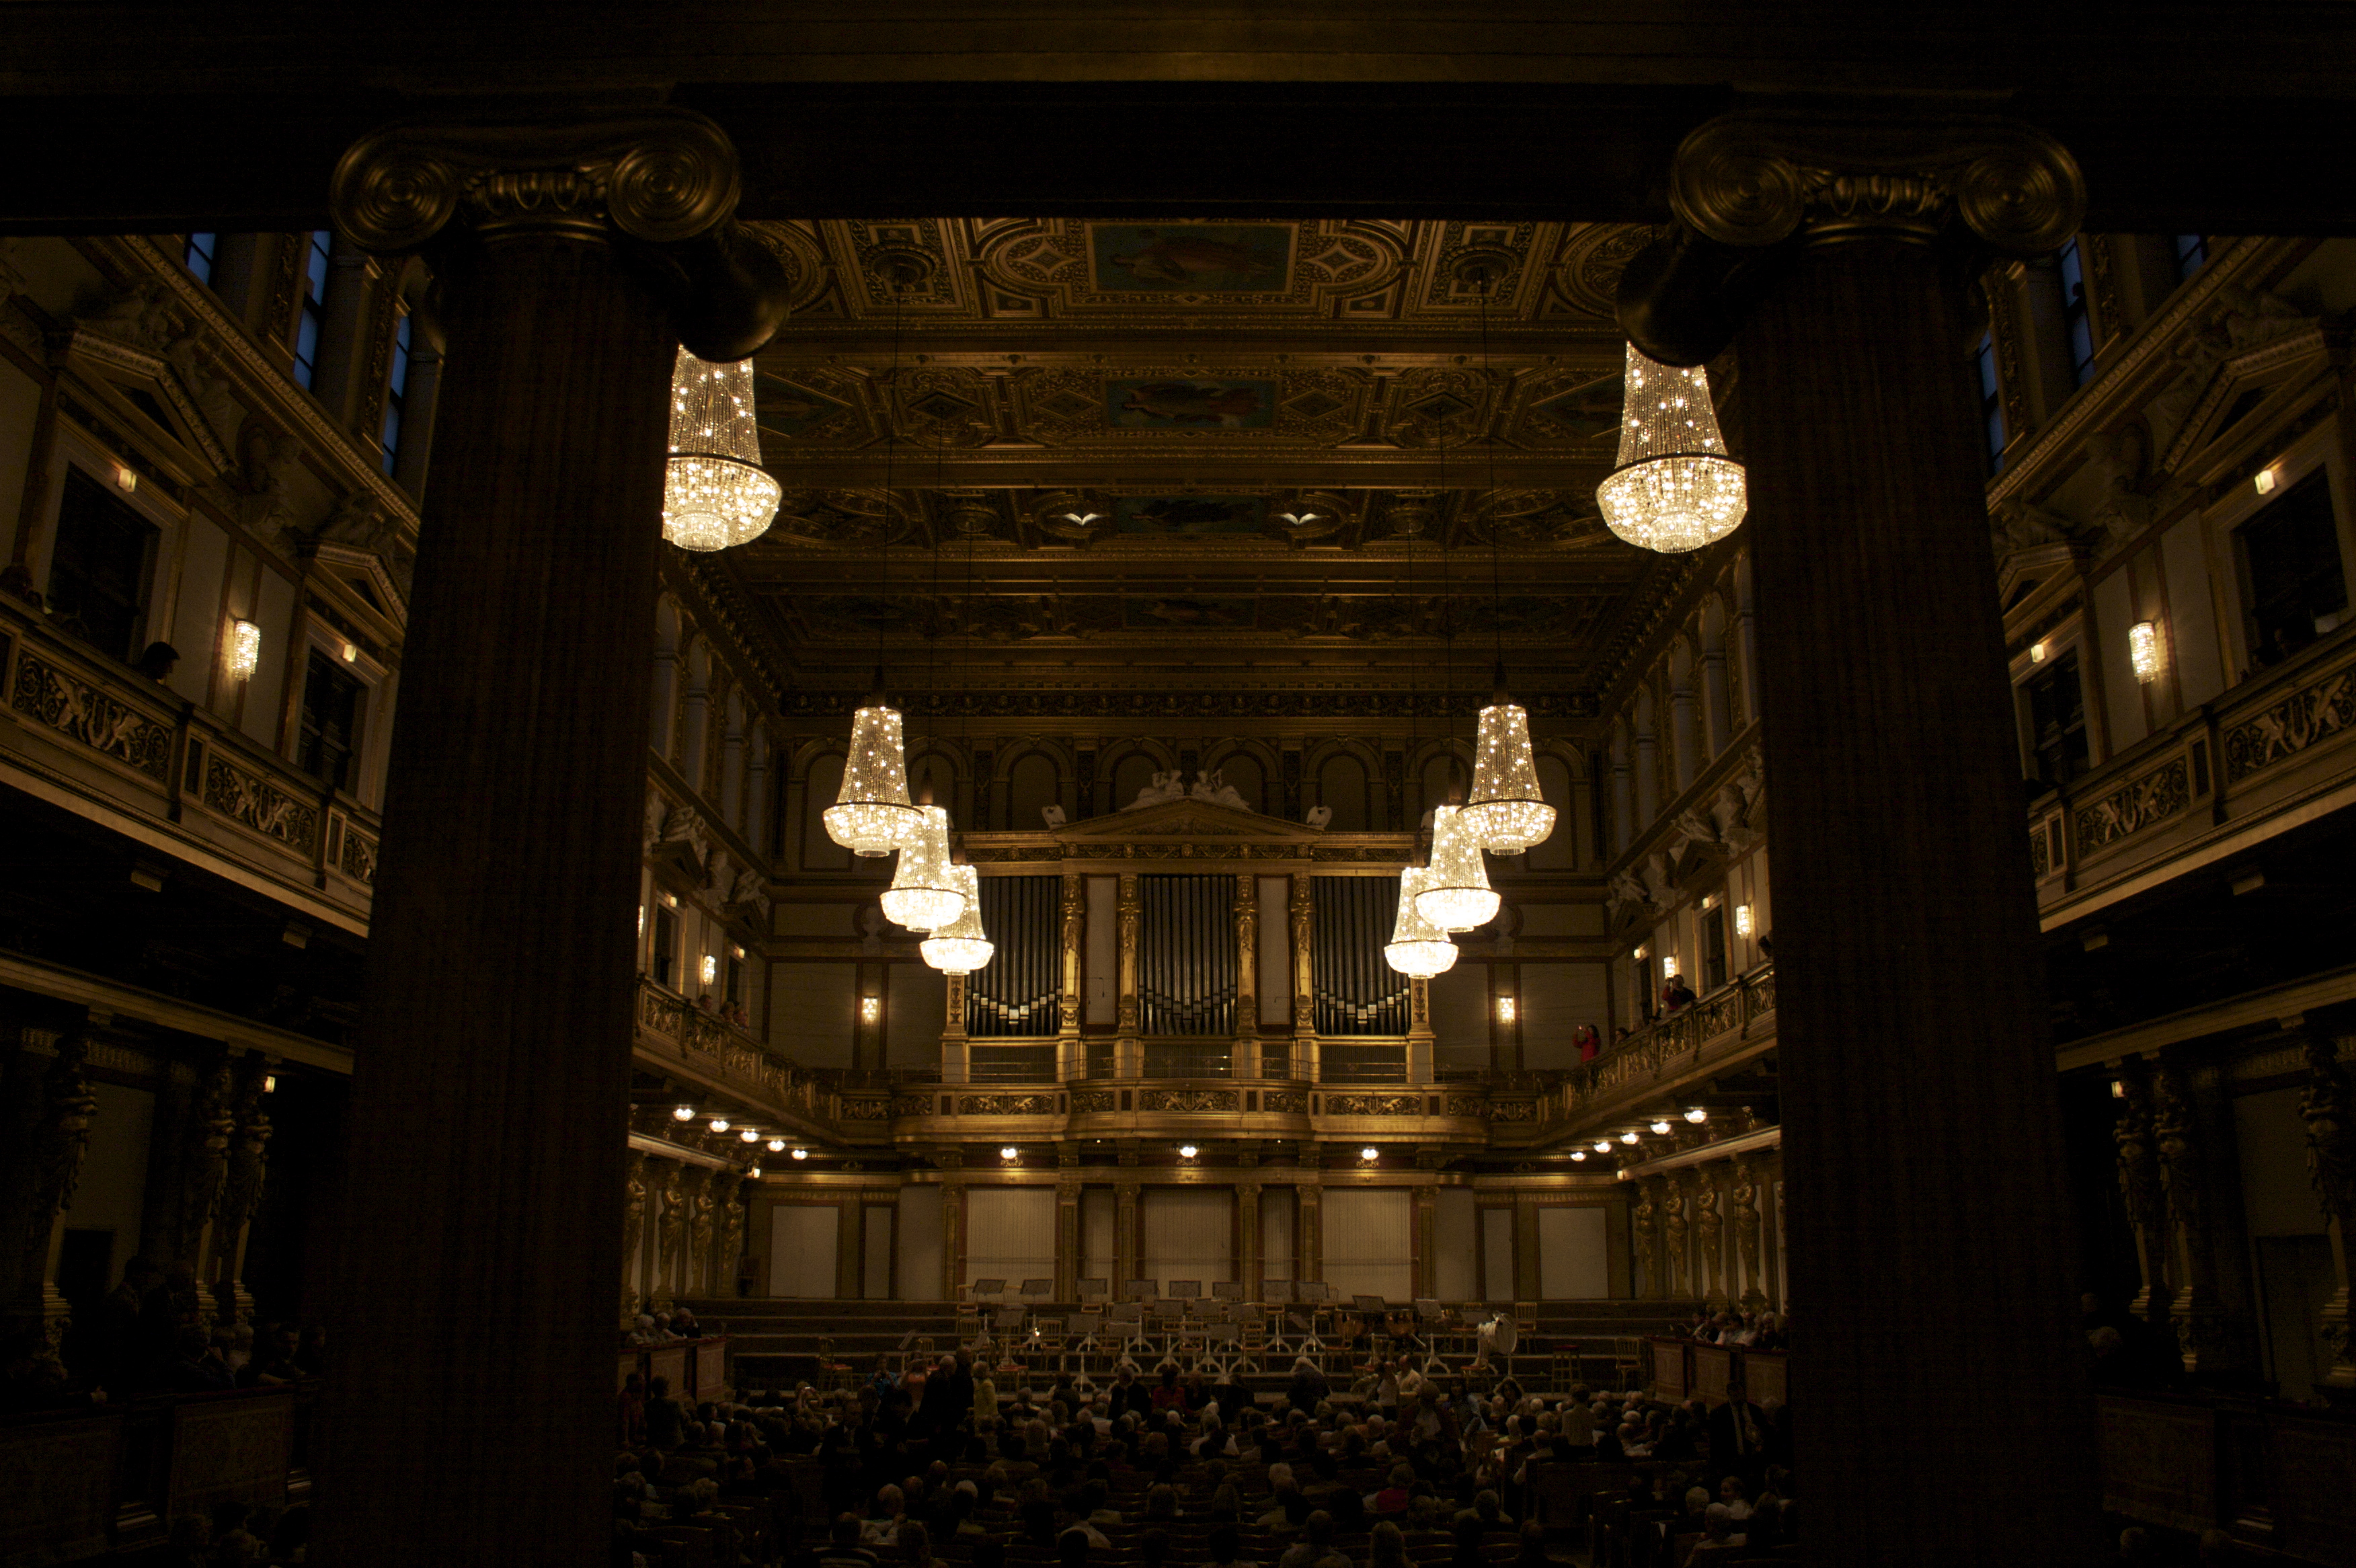 http://commons.wikipedia.org/wiki/File:Wiener_Musikverein_6.jpg